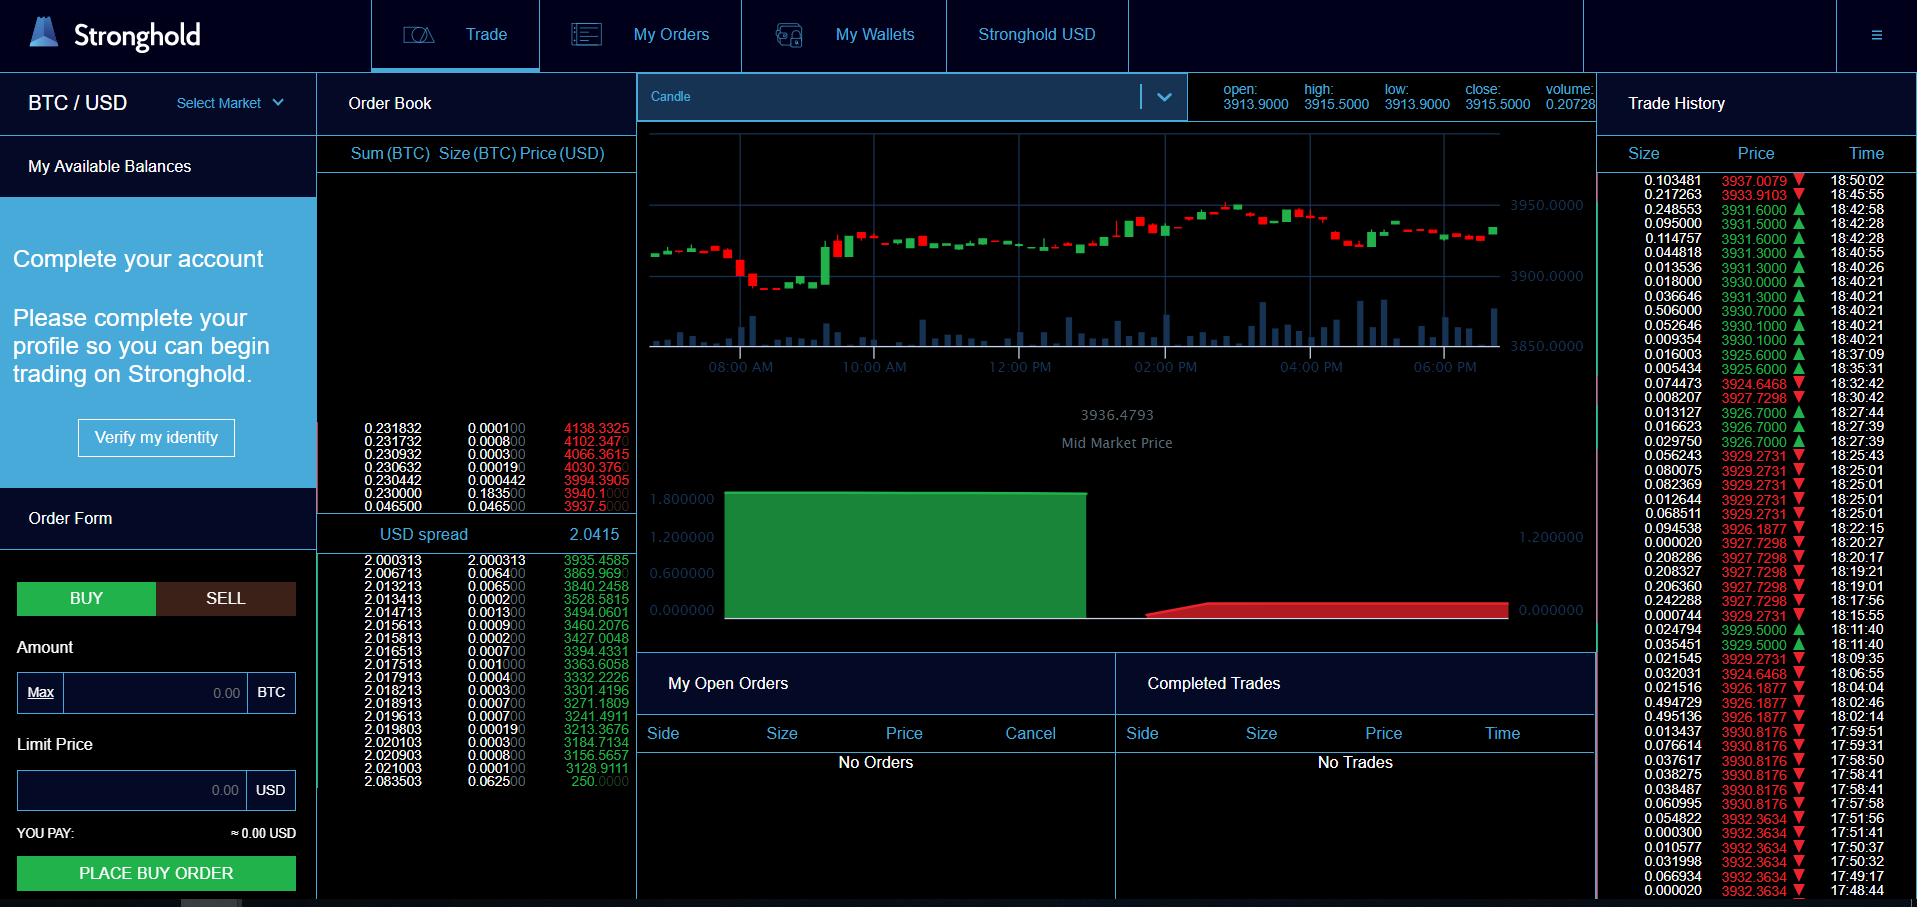 Stronghold Trading View